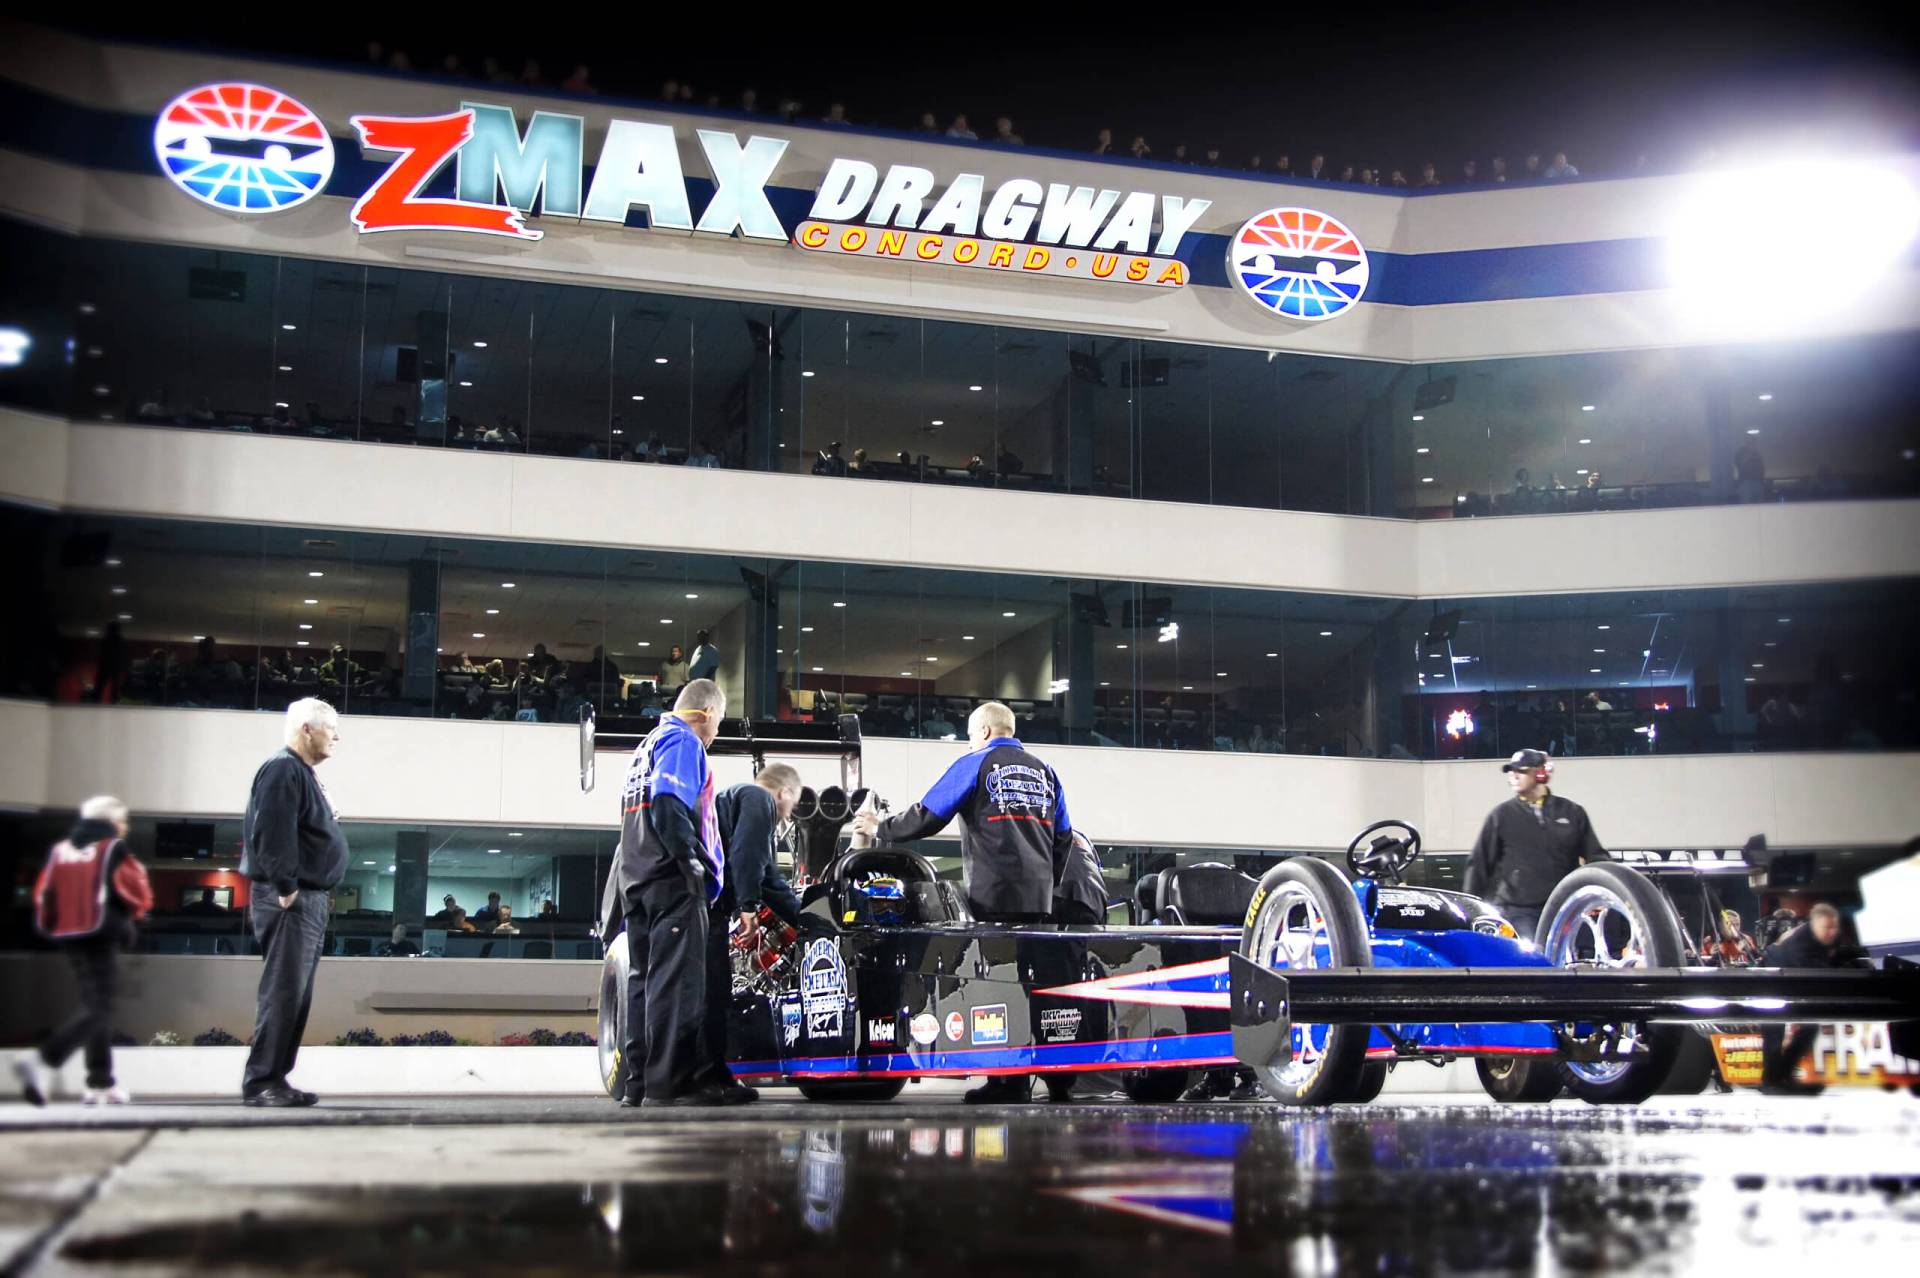 Pat Dakin, 2019 International Drag Racing Hall of Fame inductee, prepares for a pass under the lights at ZMAX Dragway.